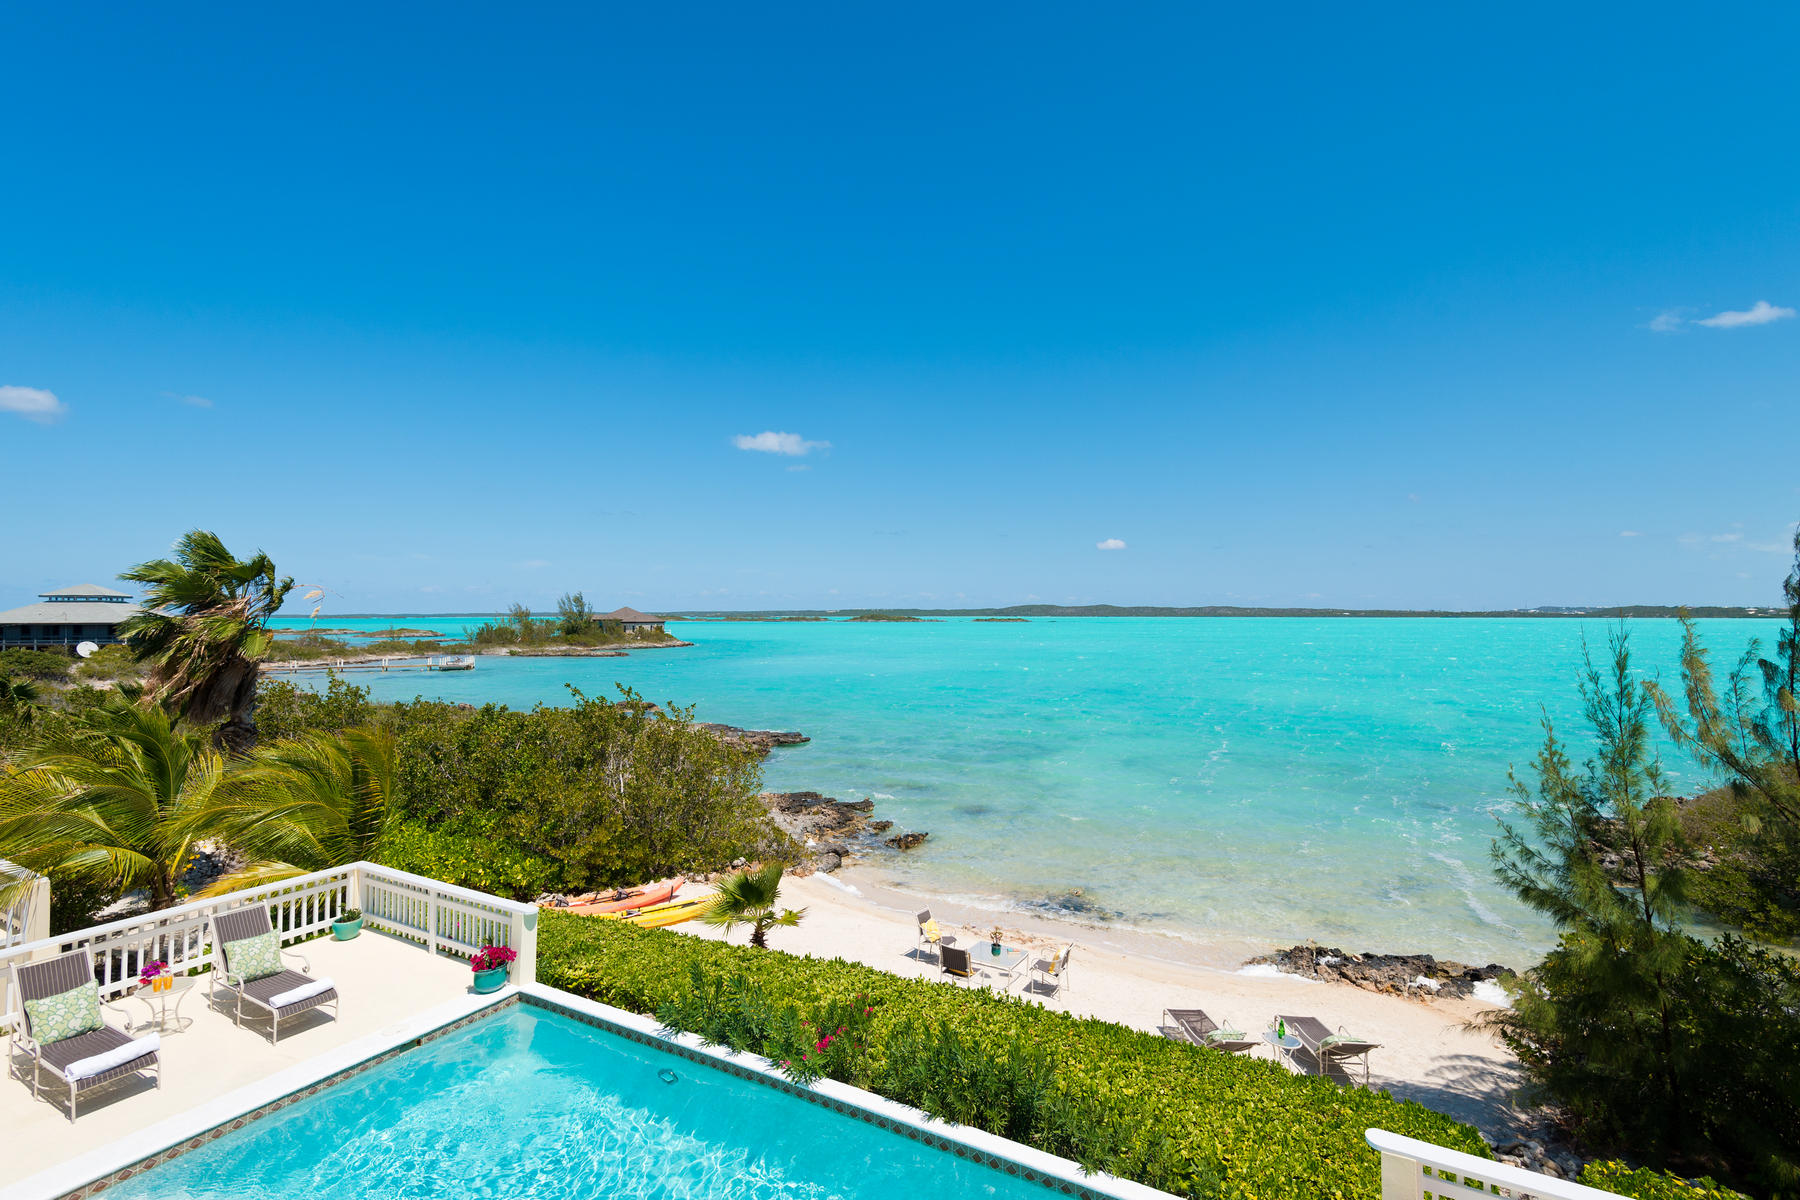 Additional photo for property listing at Bright Idea Villa Bright Idea Villa, Chalk Sound Drive Chalk Sound, Providenciales TKCA 1ZZ Islas Turcas Y Caicos